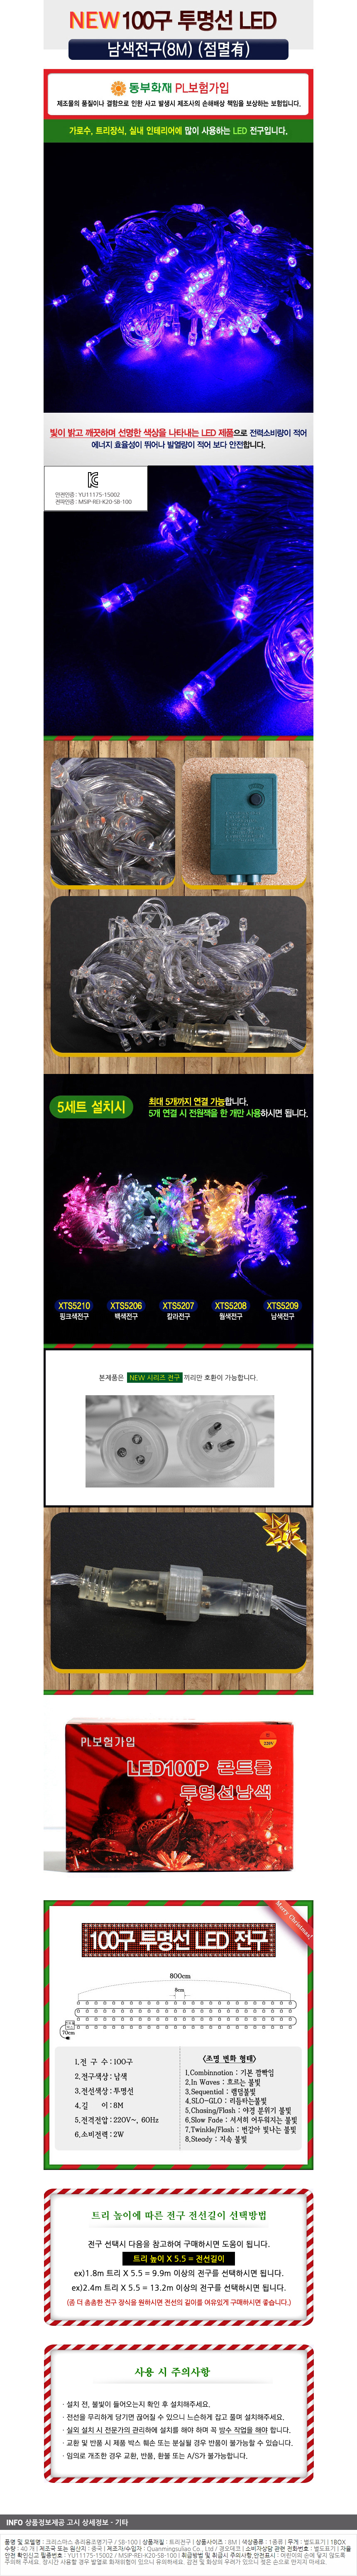 [ WINEQOK ] Christmas Goods / Transparent LED blue light bulb M blinking No connection possible _ For tree